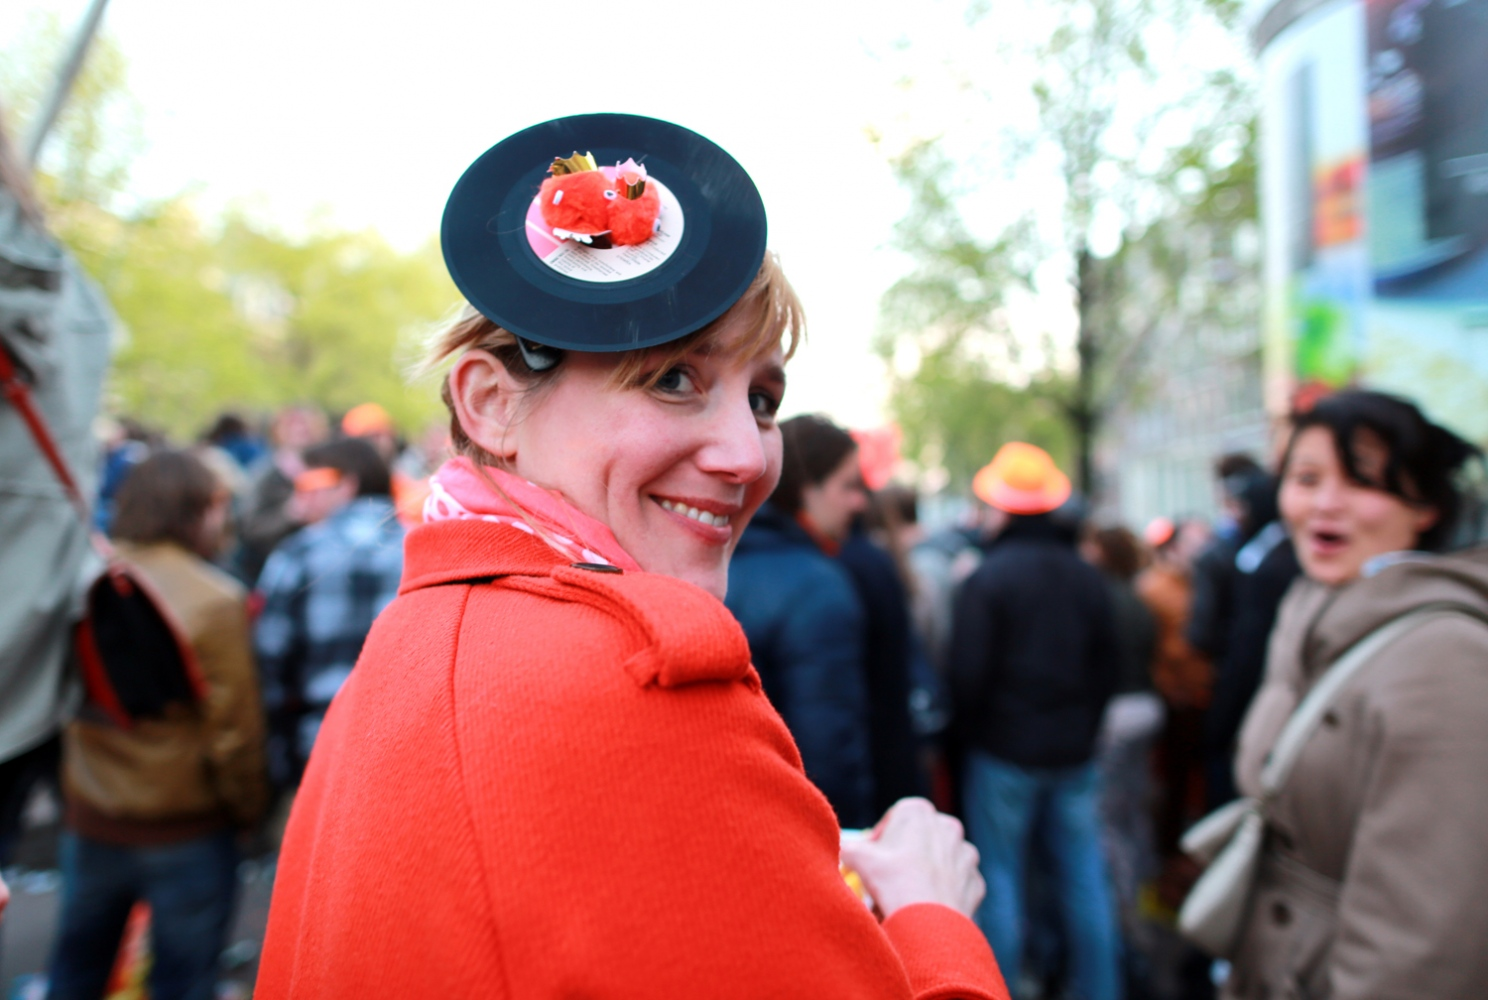 Ute Kohlmann celebrates Koningsdag or King's Day in Amsterdam.